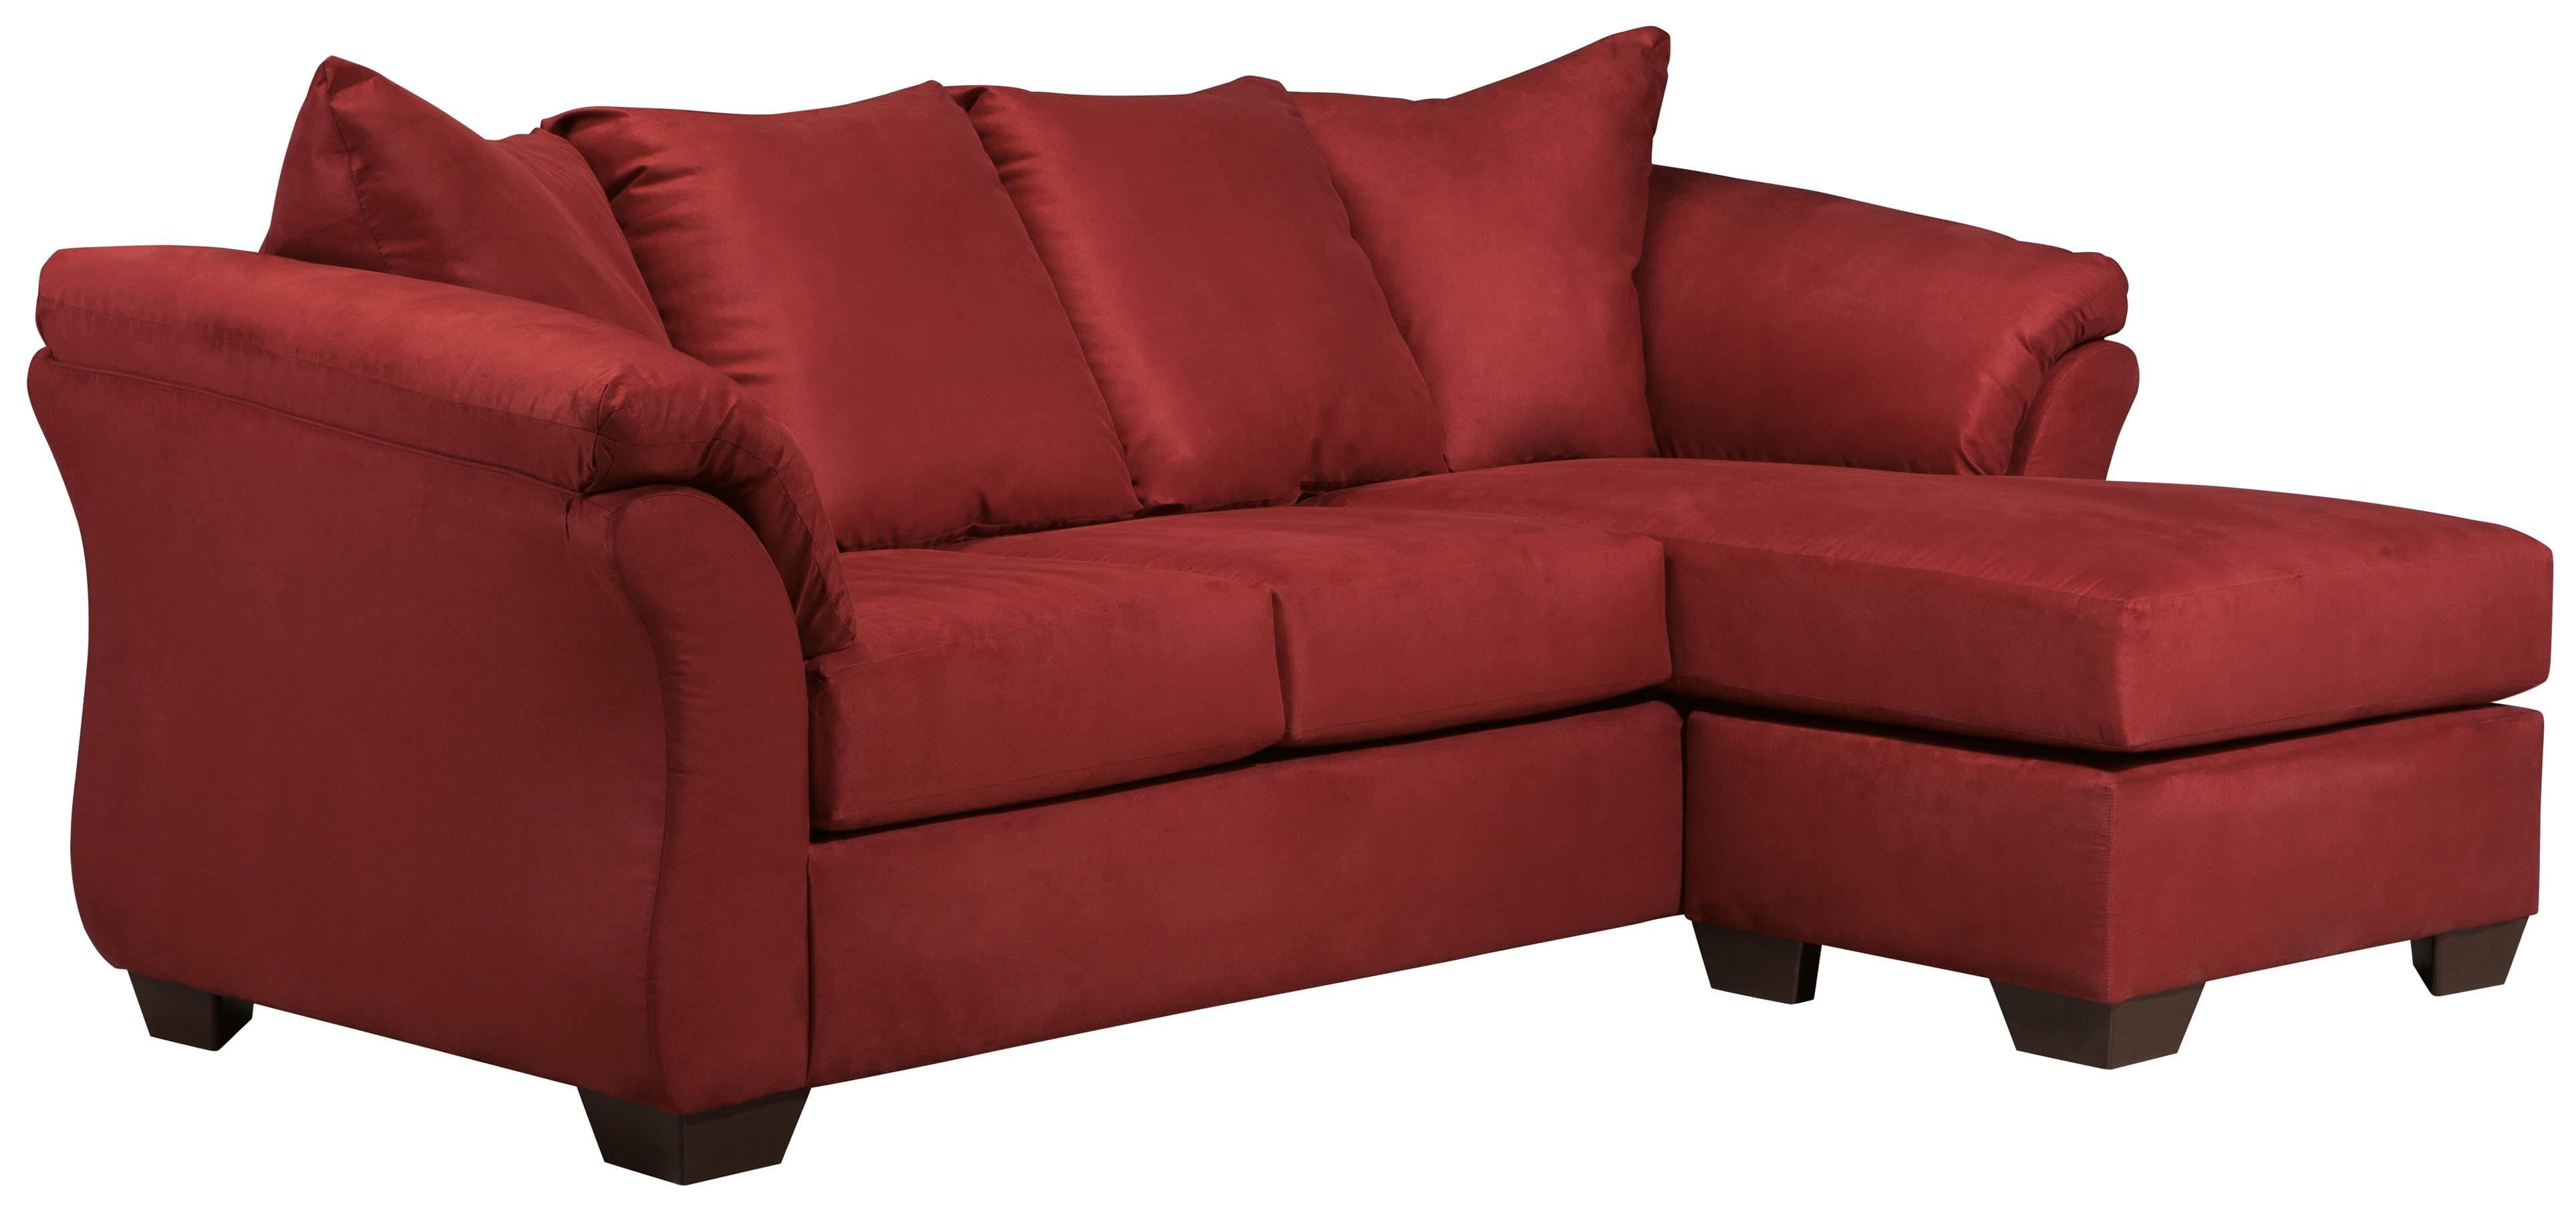 Signature Design by Ashley Darcy - Salsa Sofa Chaise - Item Number: 7500118